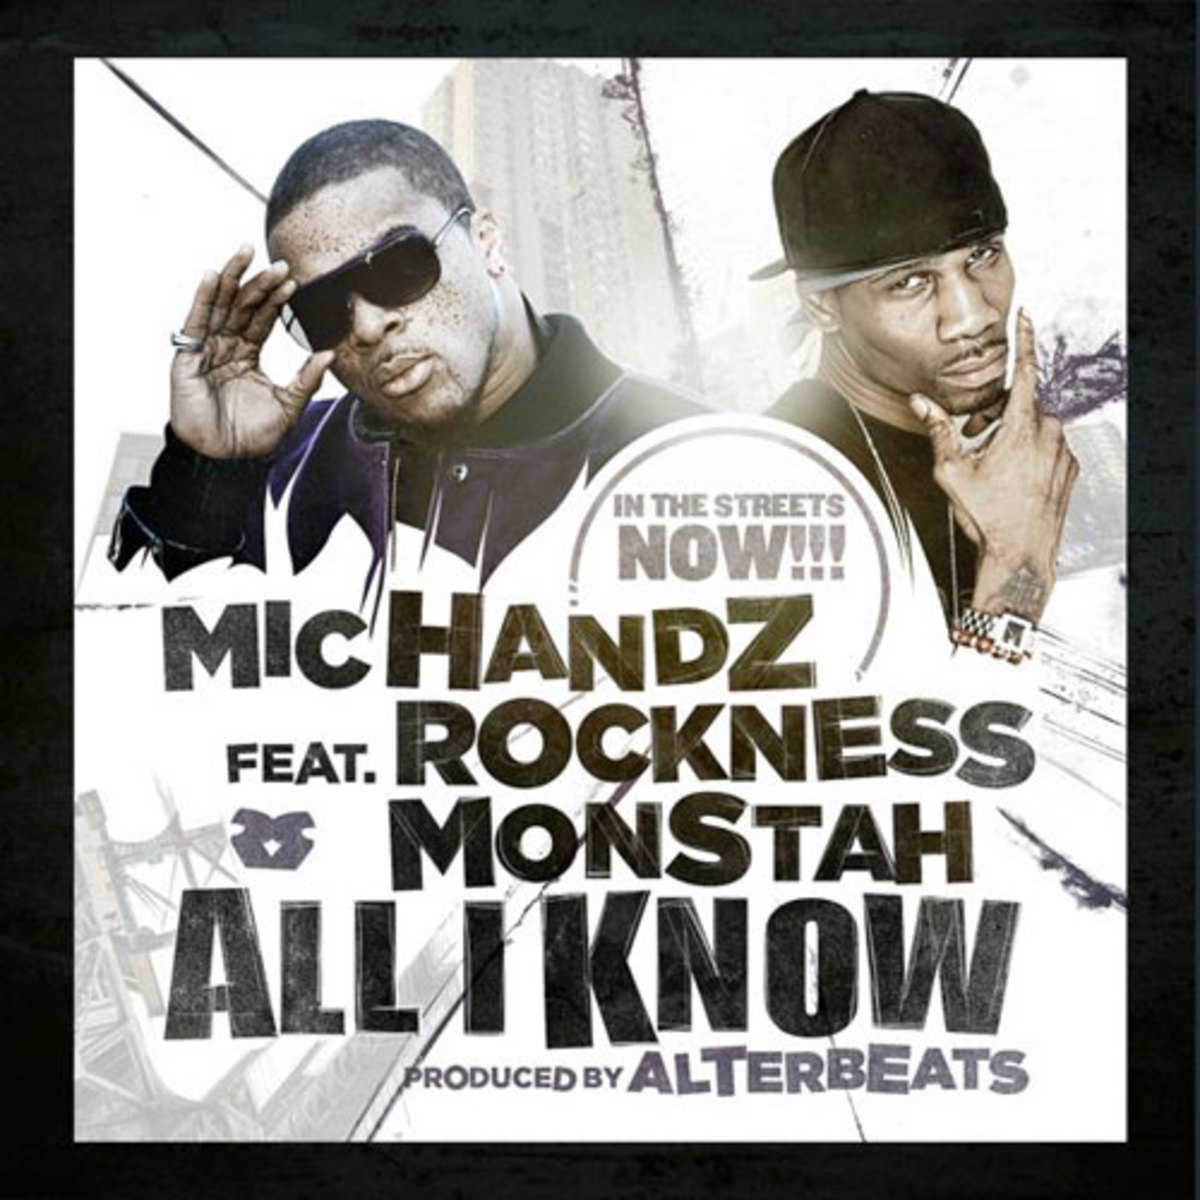 michandz-alliknow.jpg